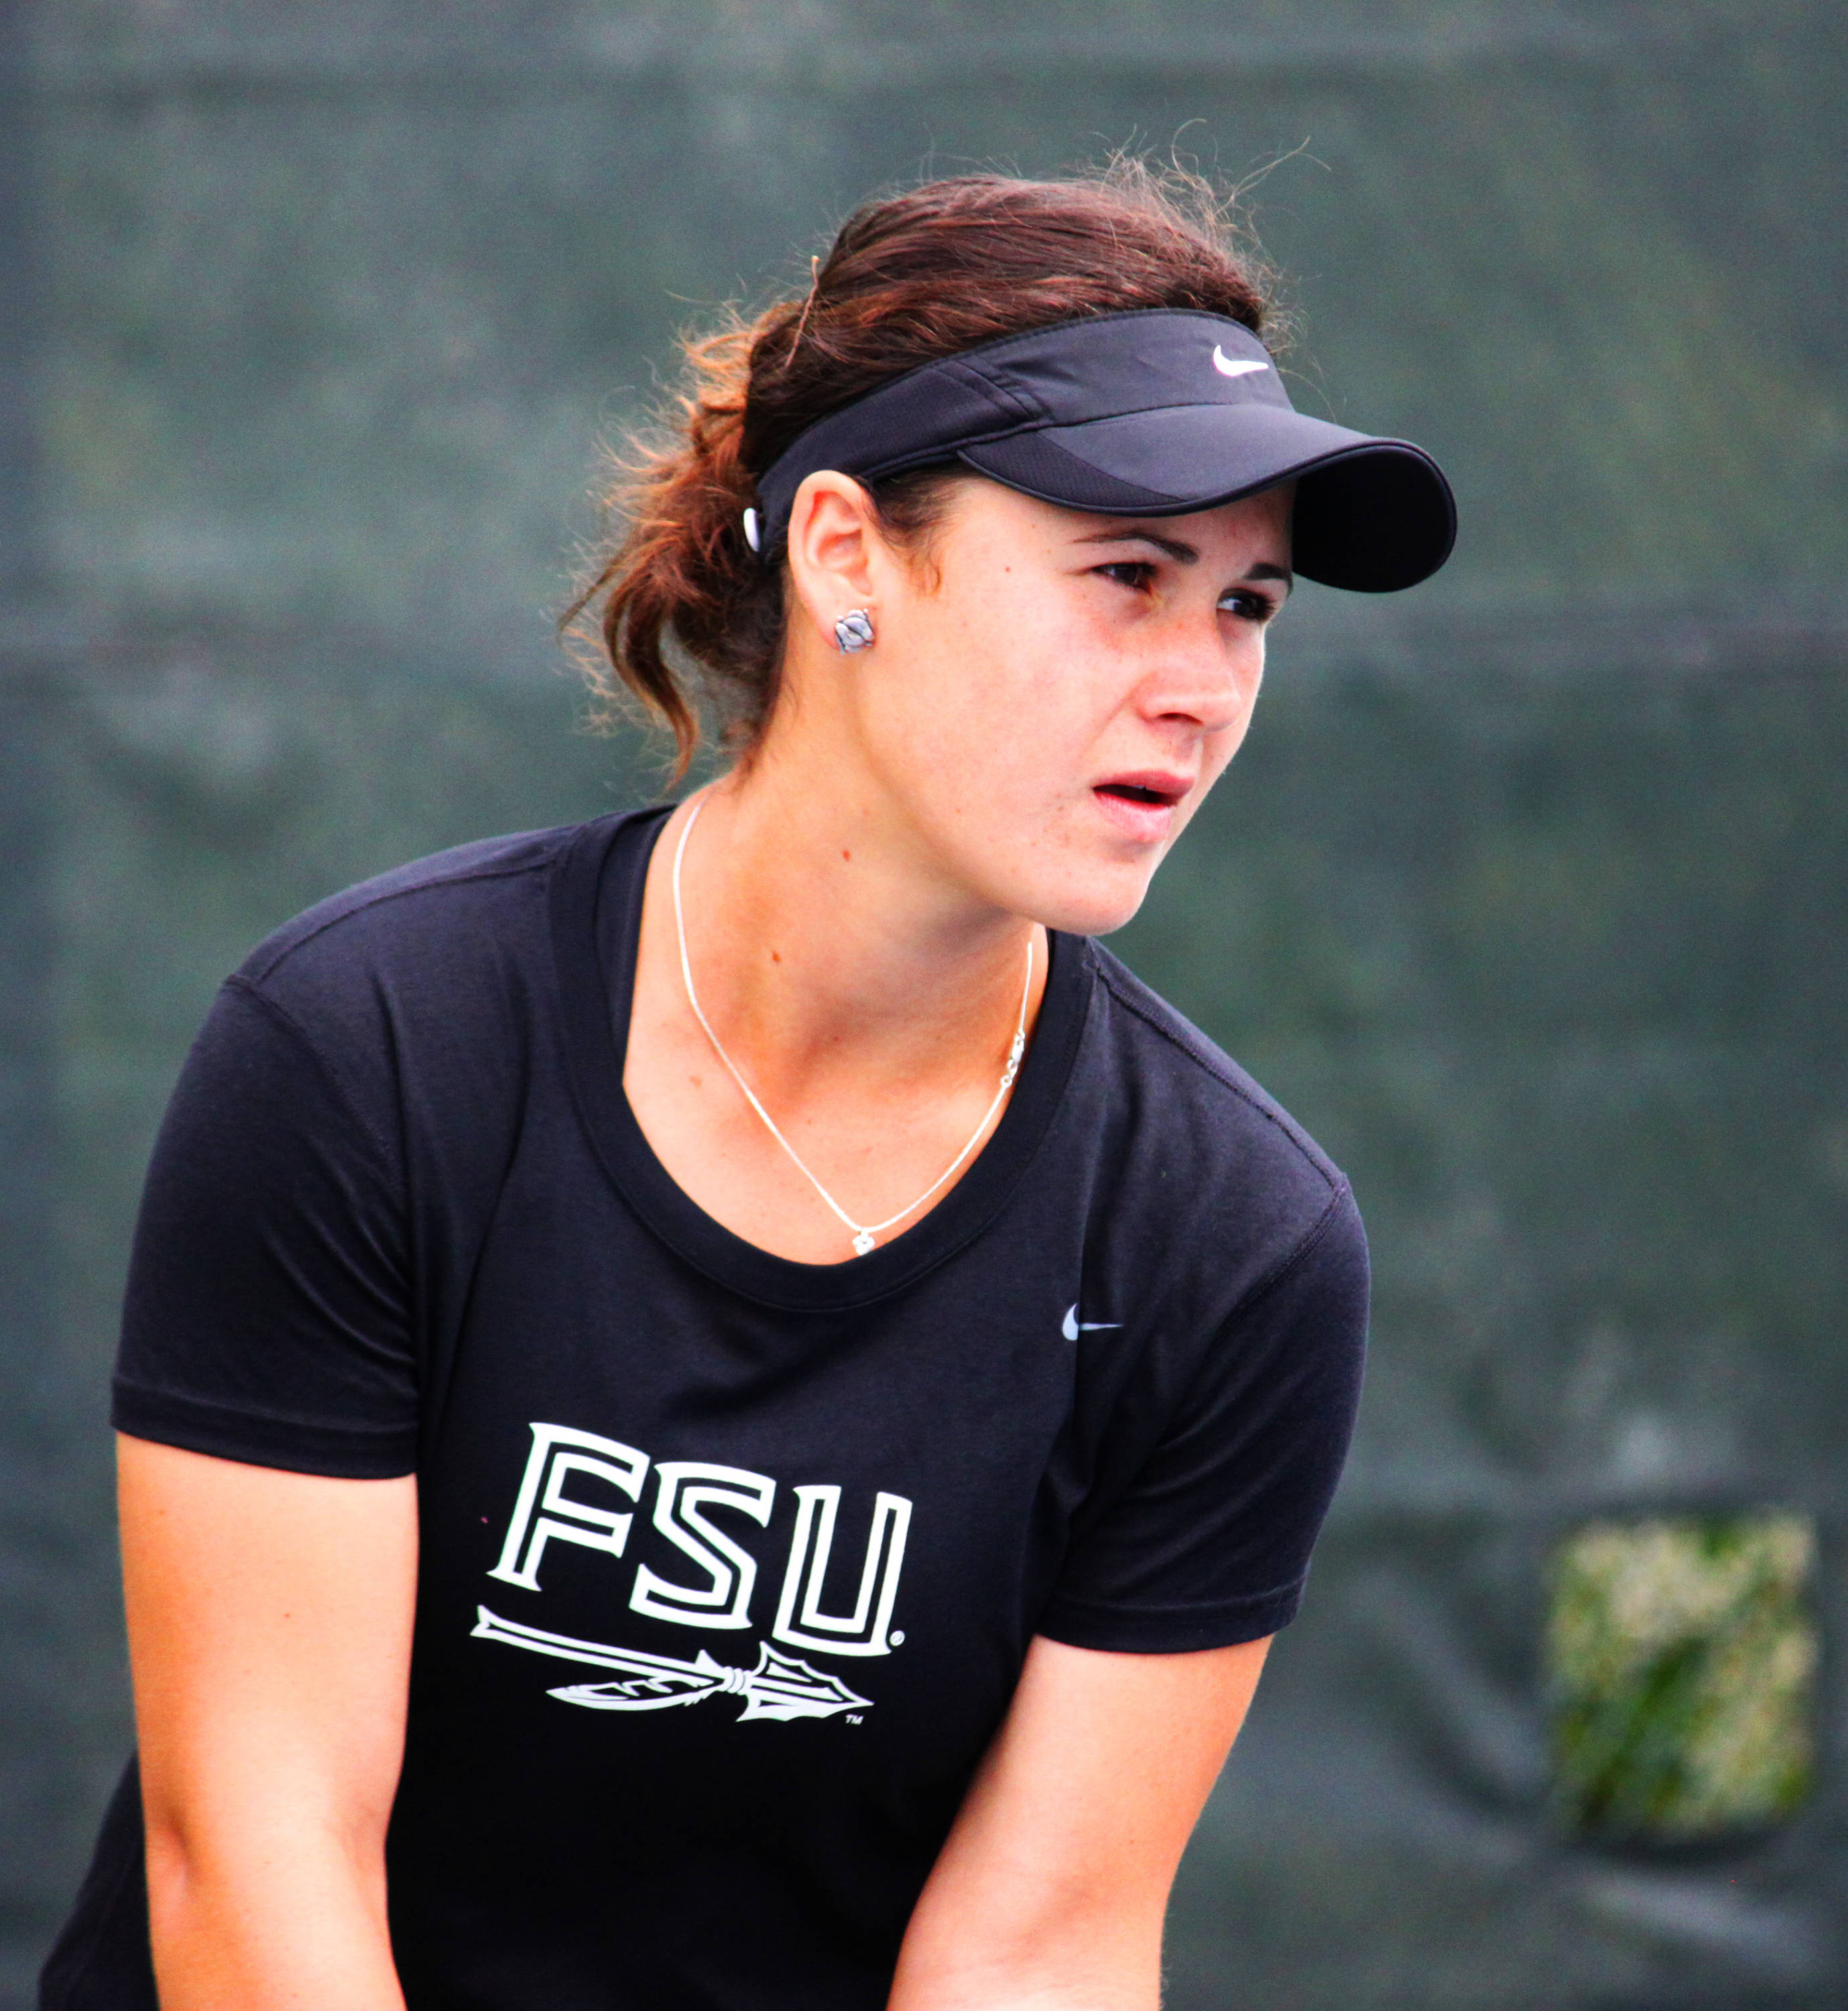 Francesca Segarelli stares down her opponent before serving the ball.